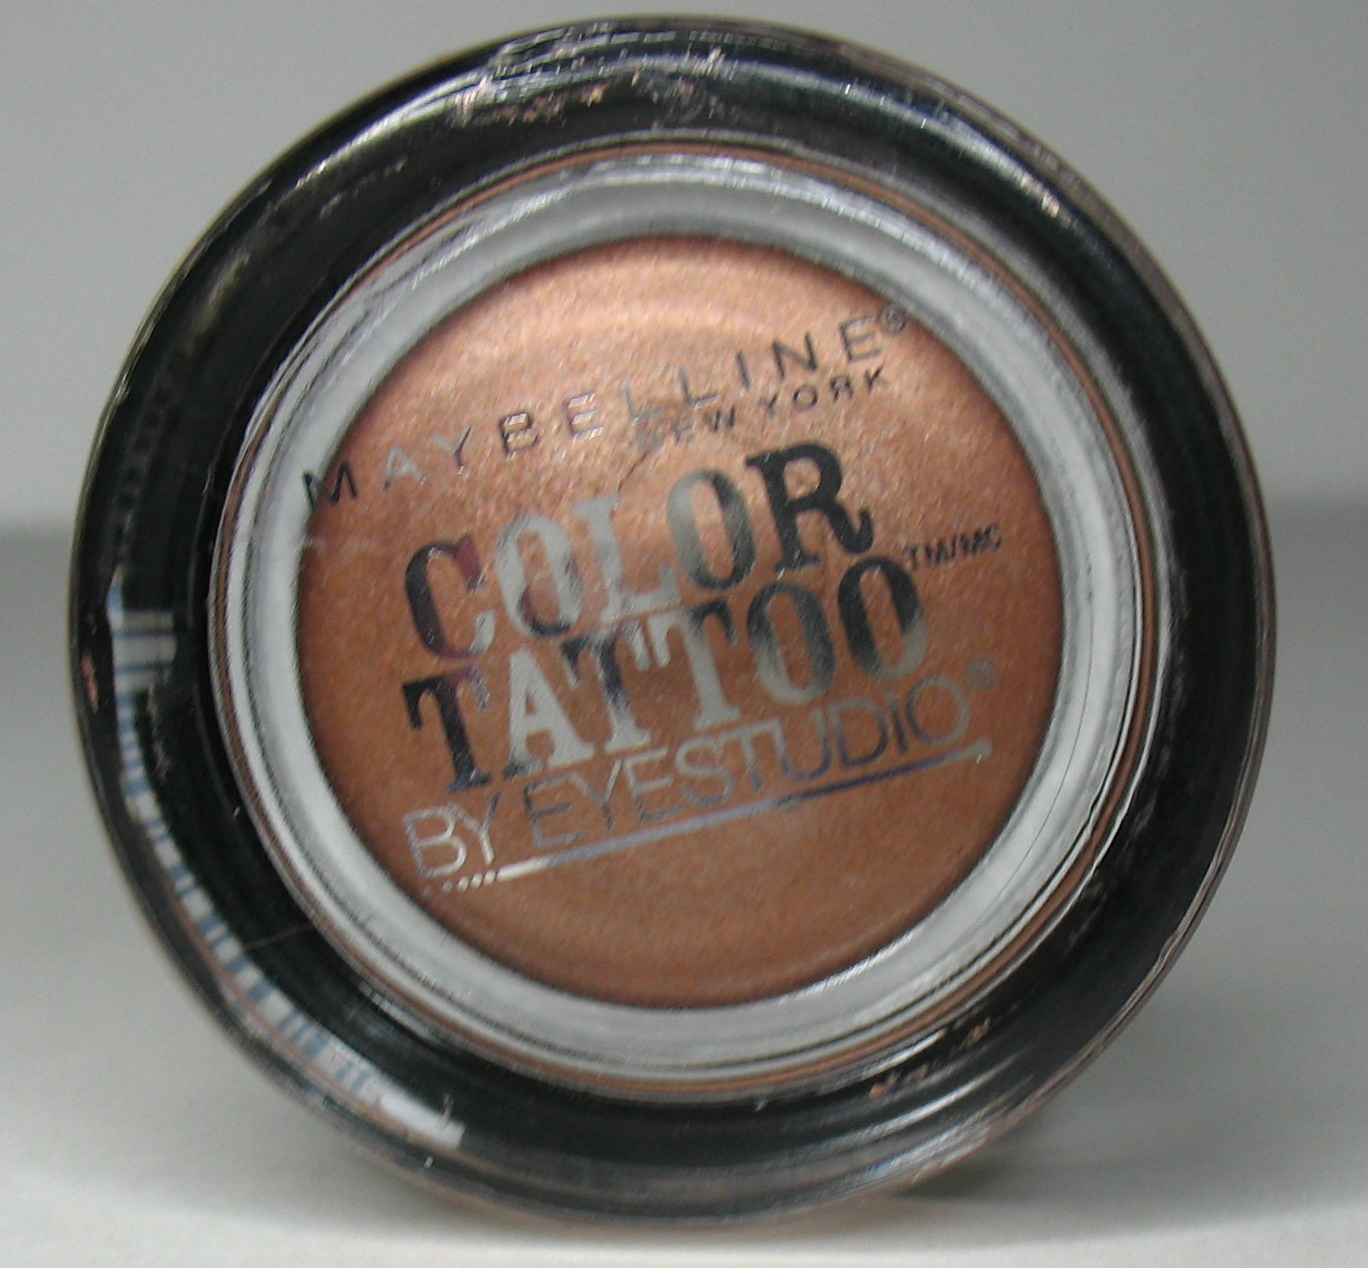 Beyond just beauty maybelline color tattoo cream for Maybelline color tattoo gel eyeshadow